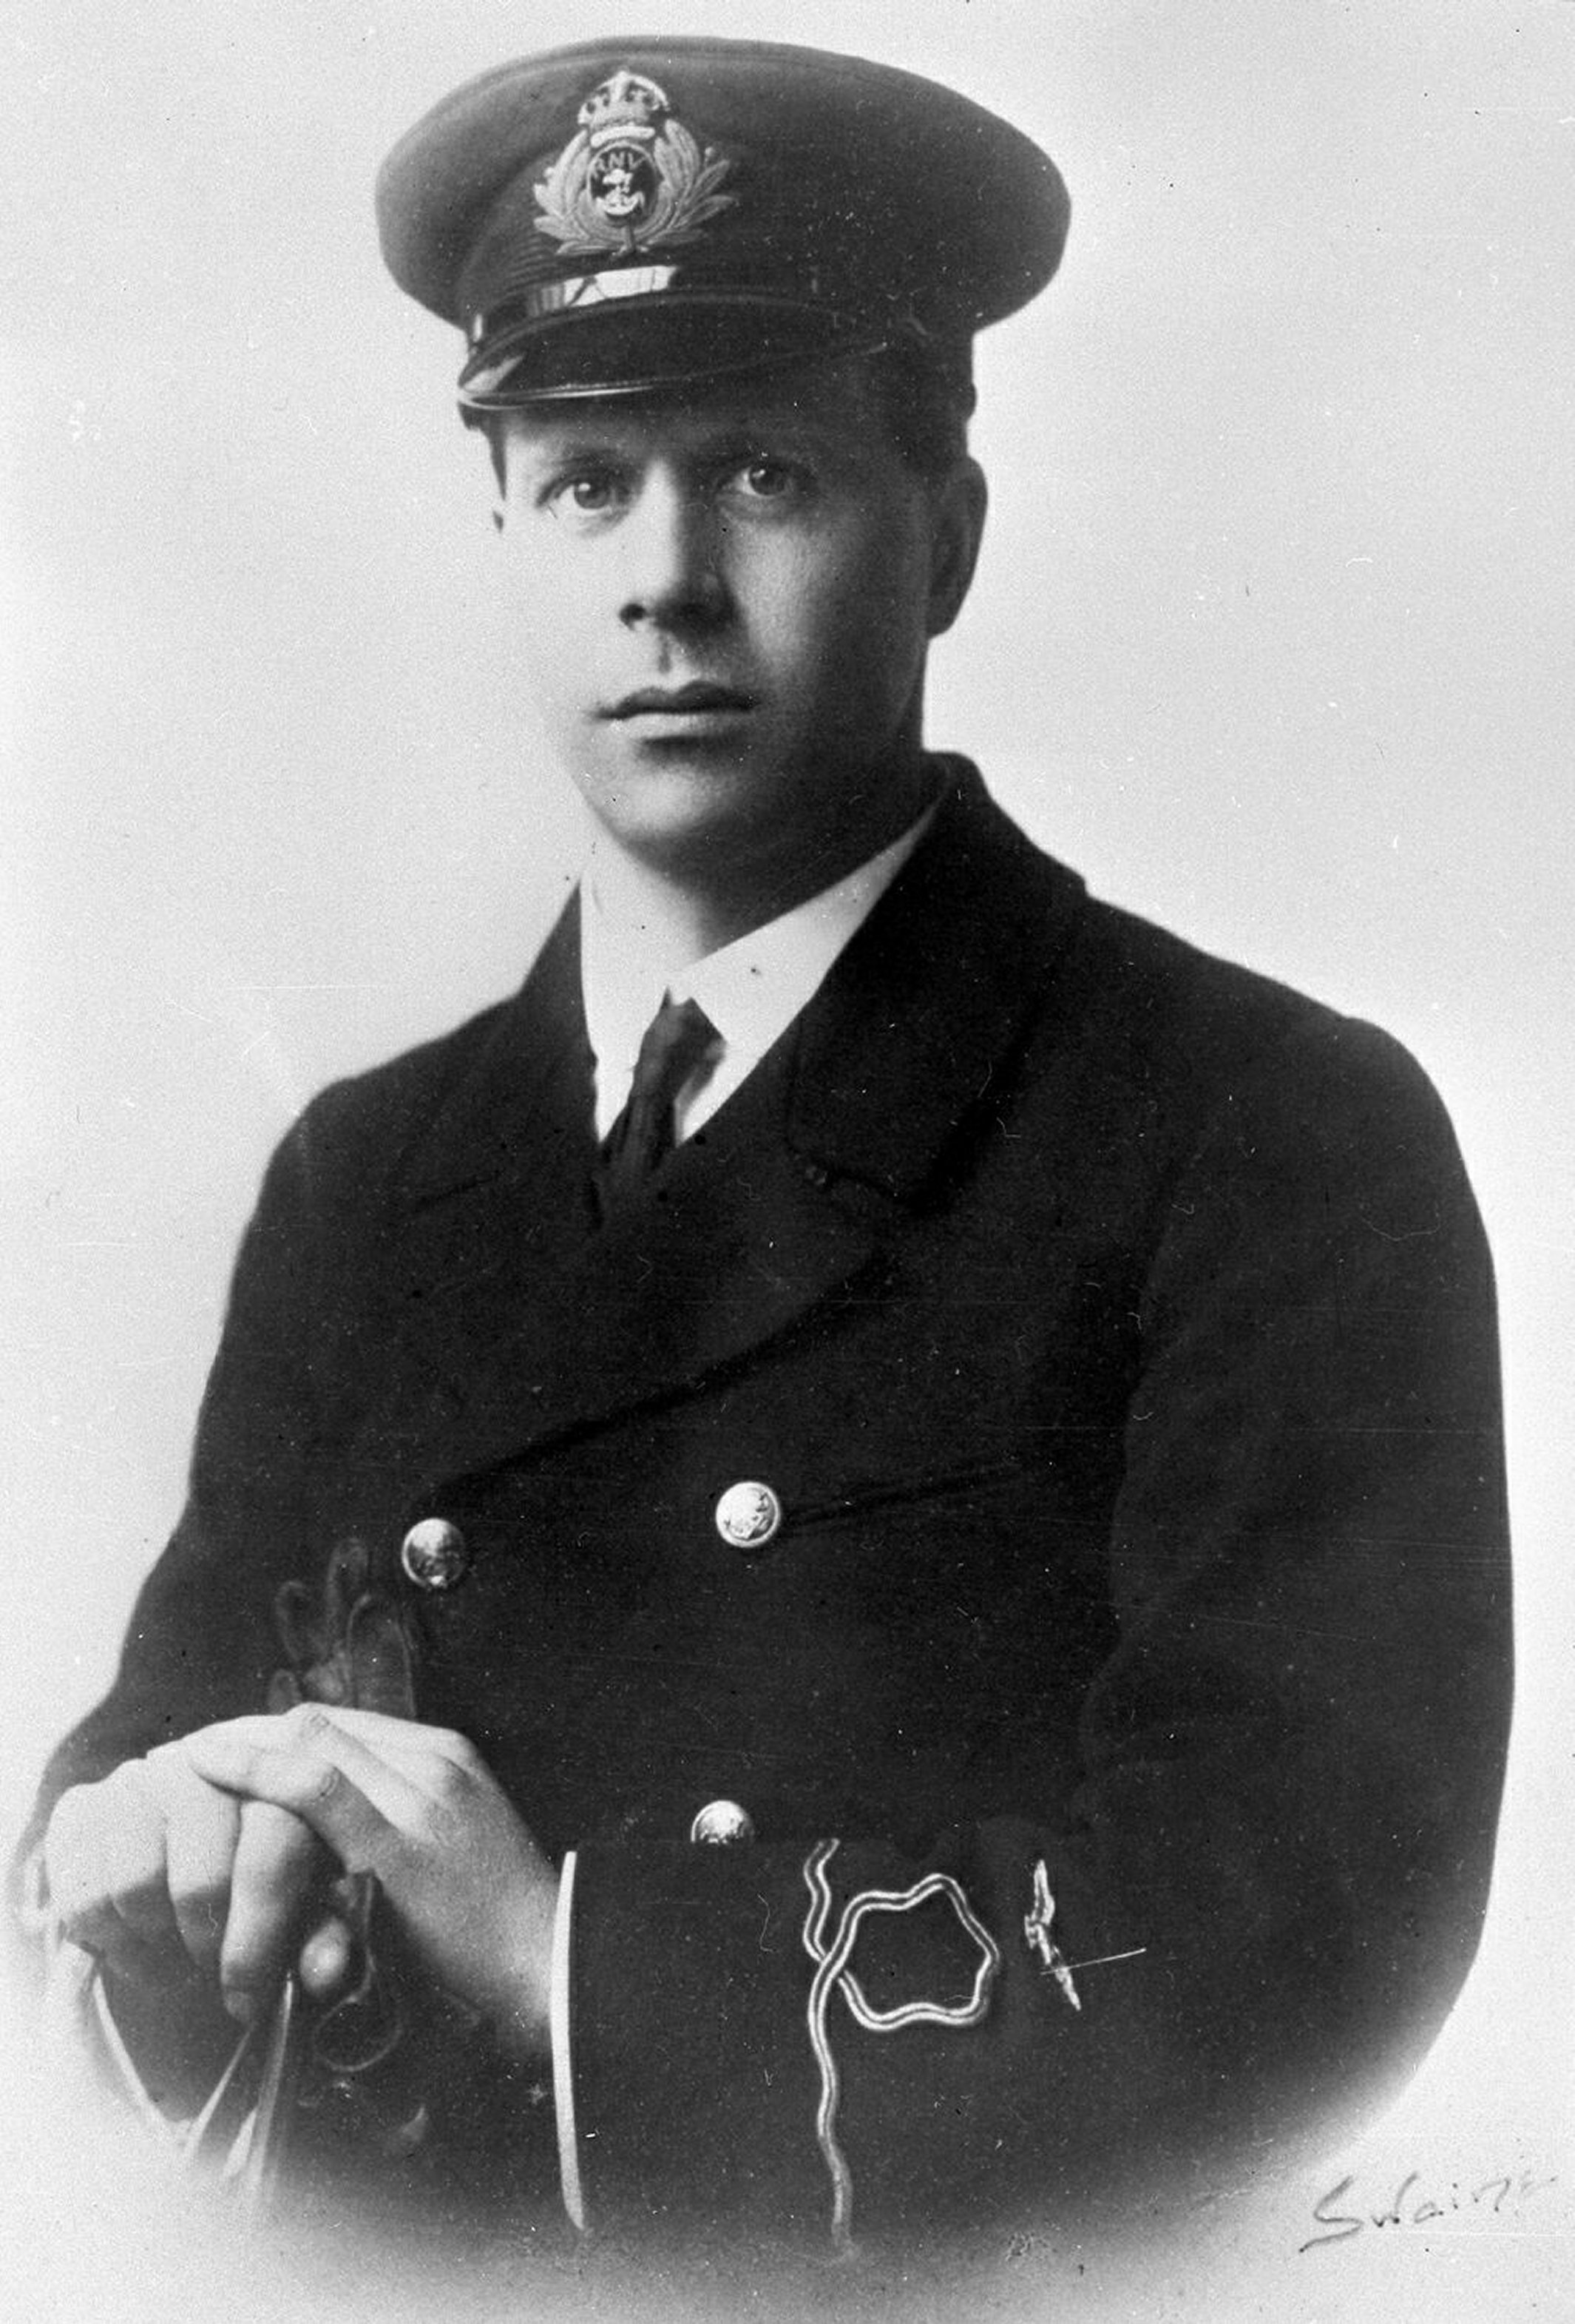 Sir Barnes Neville Wallis